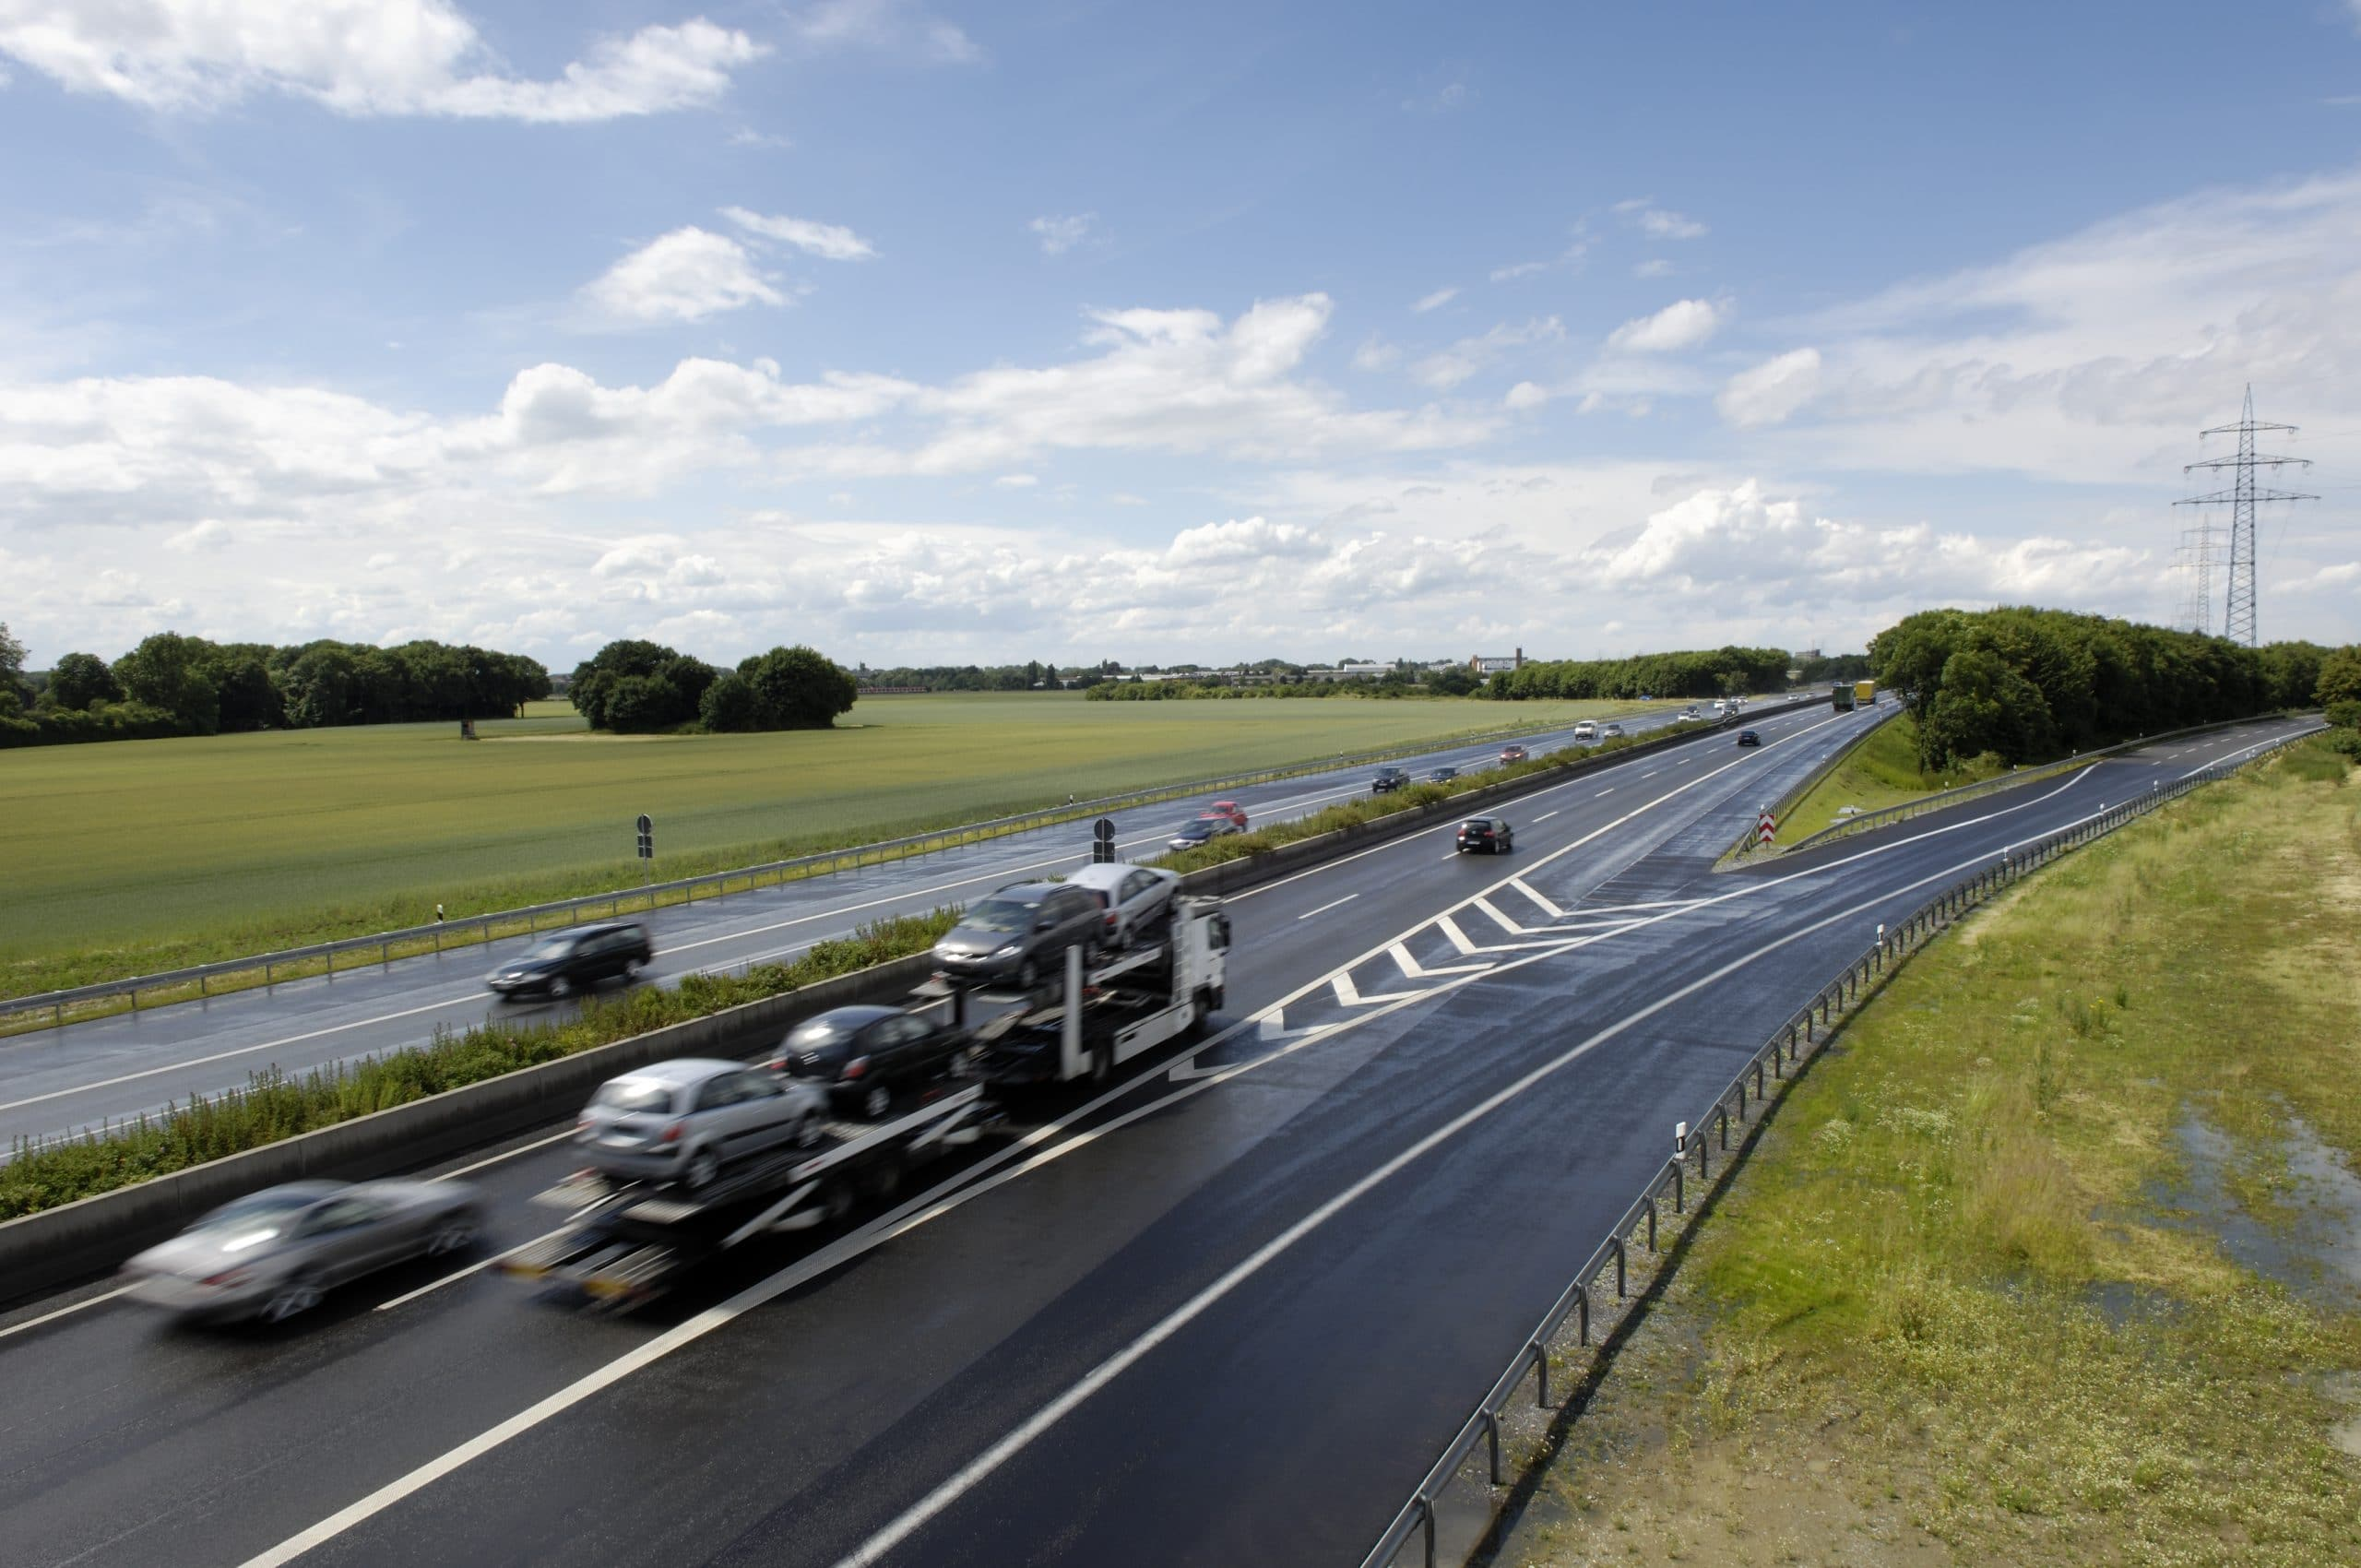 German highway with car-transporter and some other private cars.